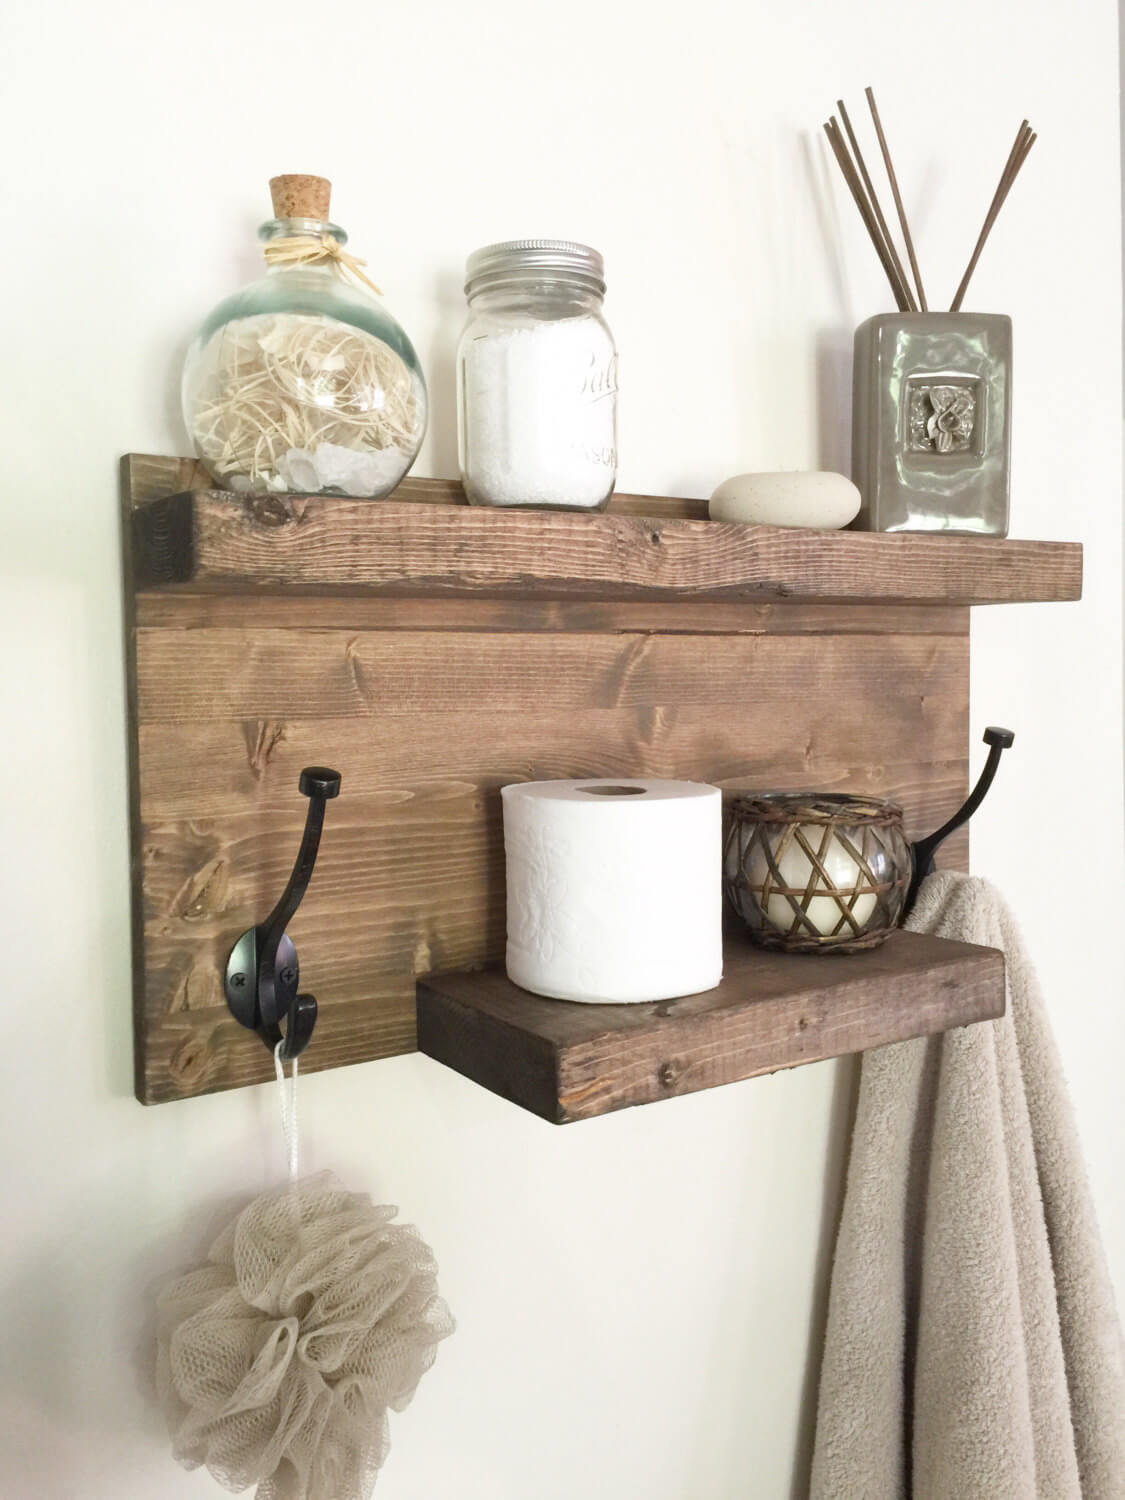 Fullsize Of Rustic Home Accessory